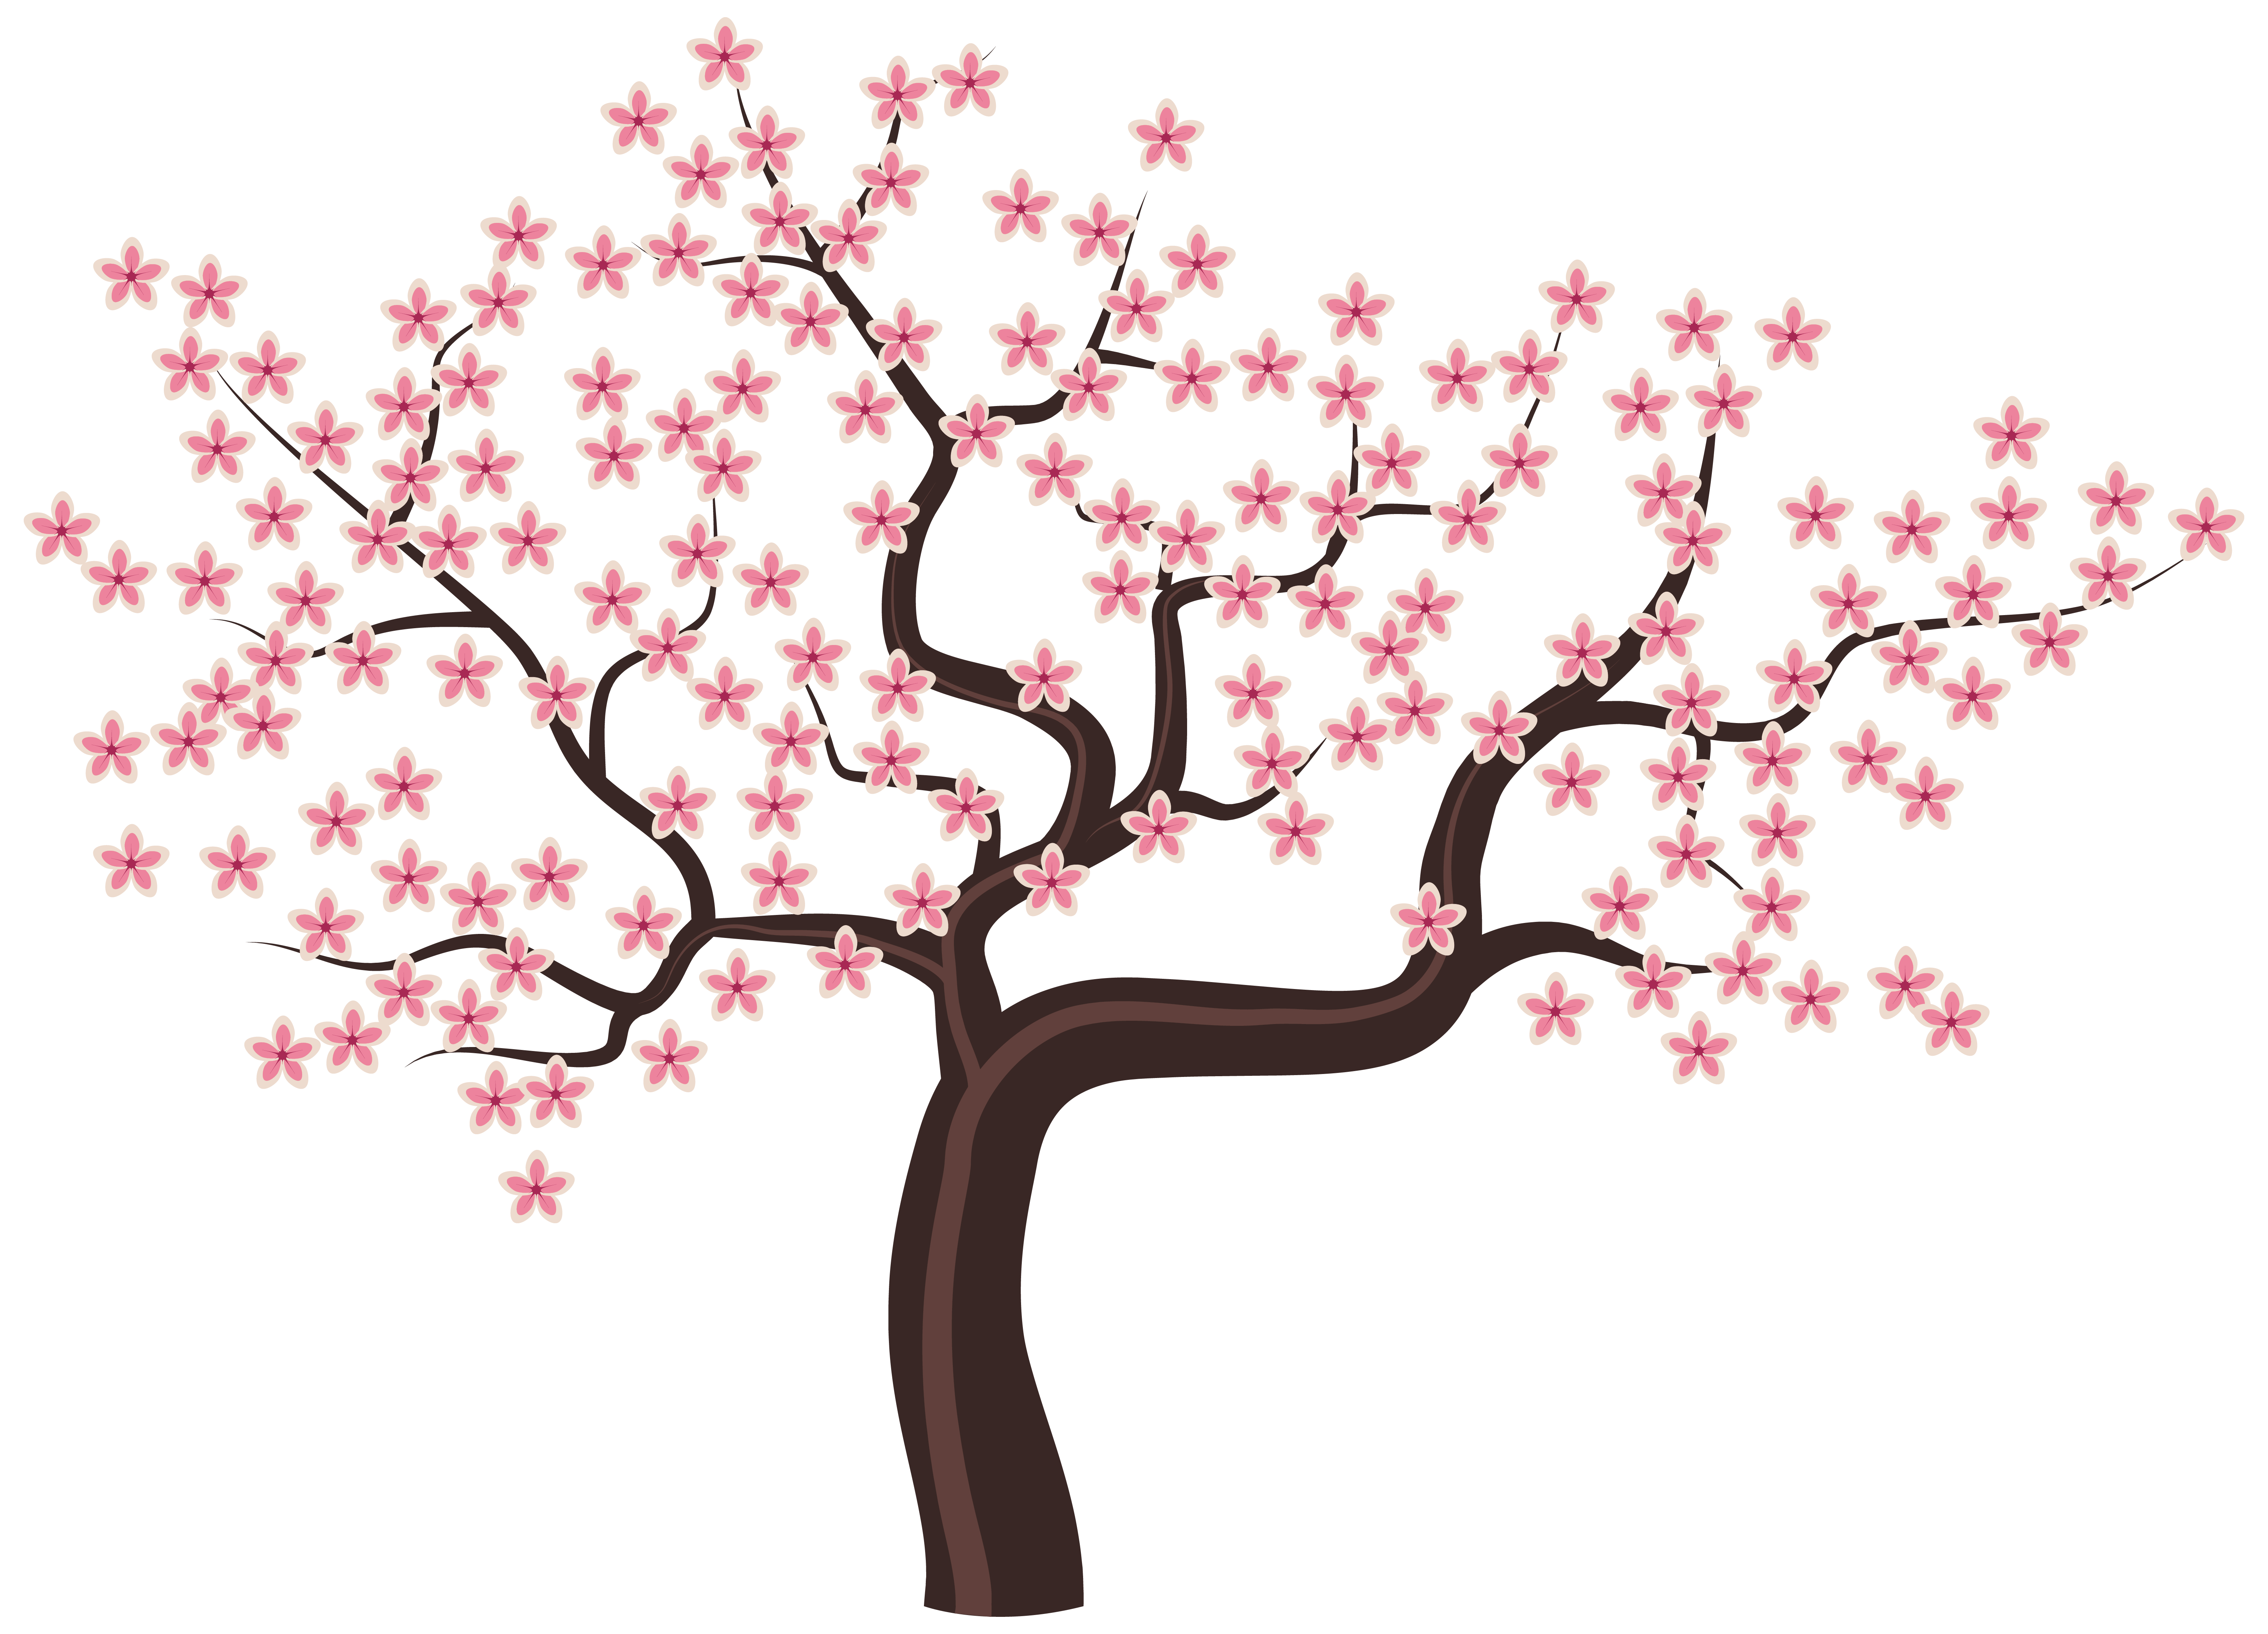 Flower tree clipart png image free stock Tree with Flowers PNG Clipart Image image free stock